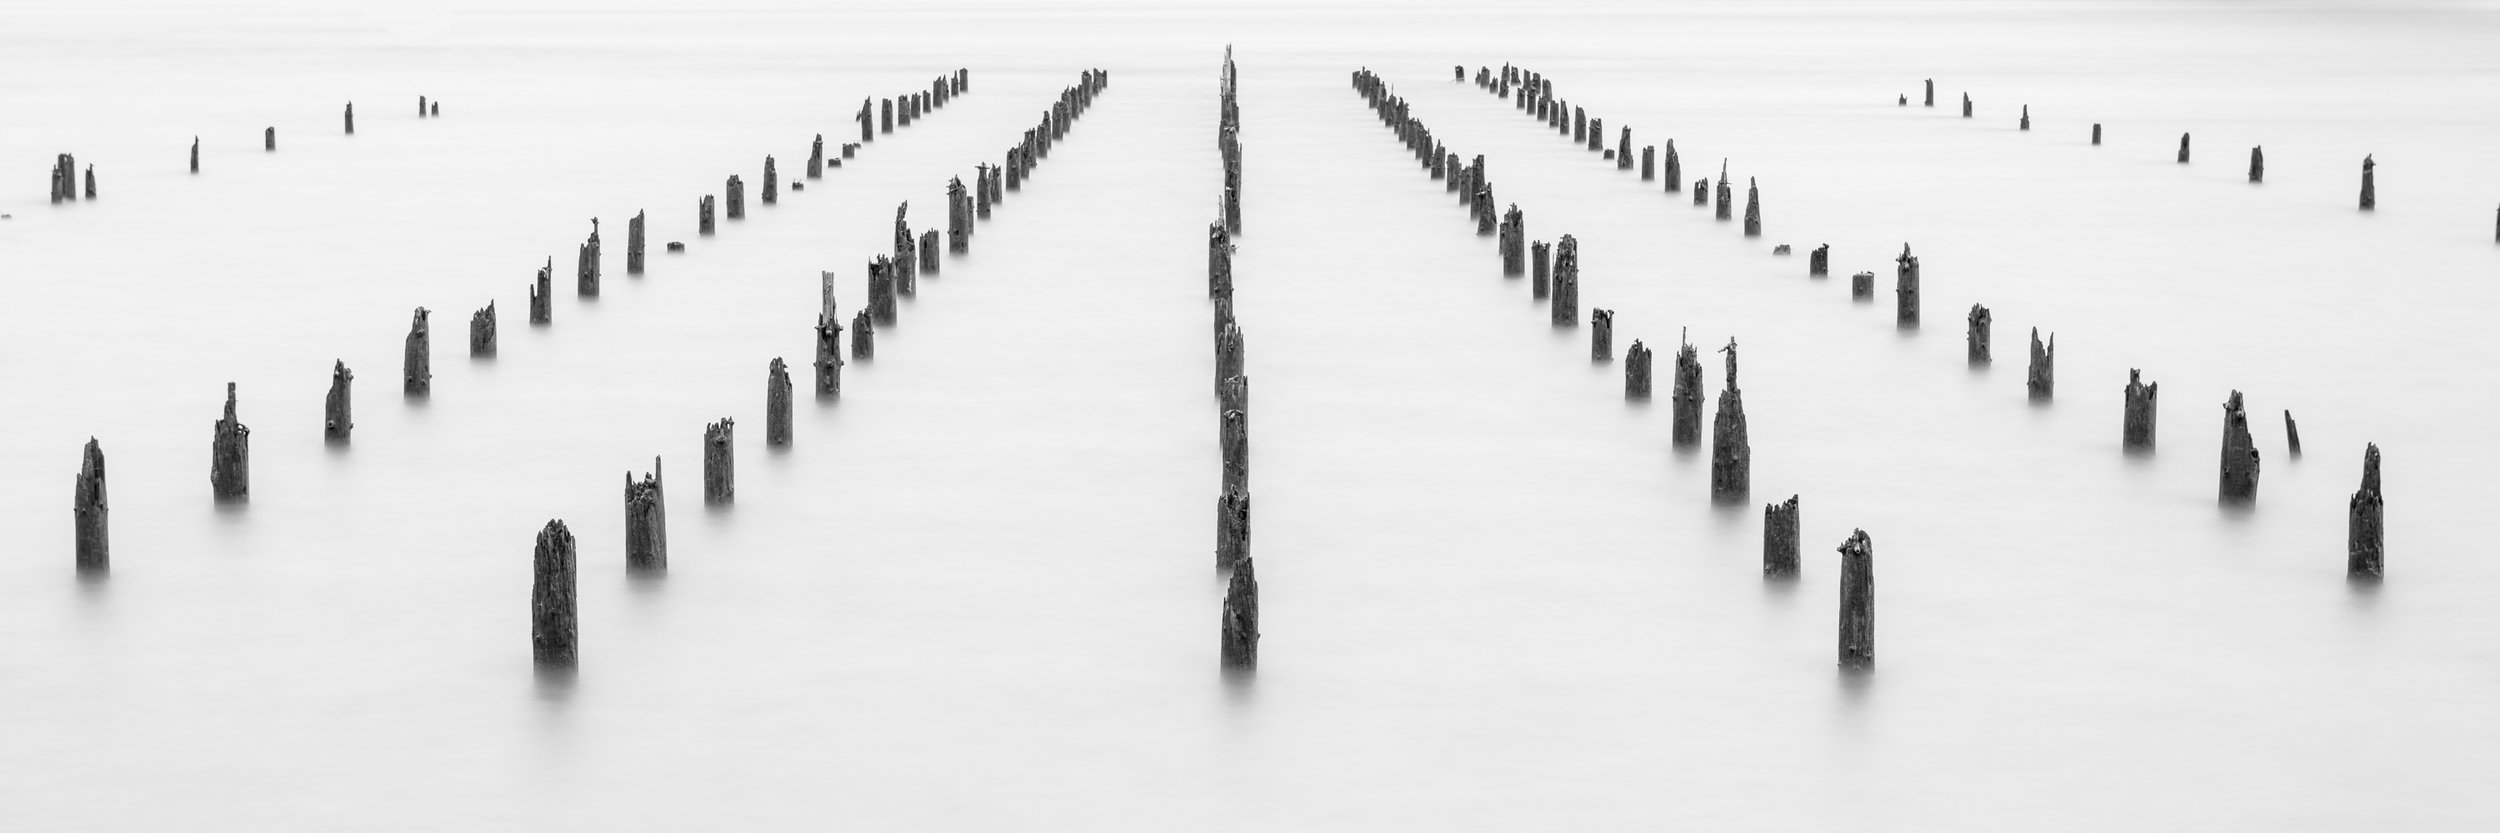 Forgotten Piers of the Pacific Northwest 1  Size: 20 X 60 inches  Hahnemuhle Fine Art Inkjet Print  Available as limited edition of 100 prints